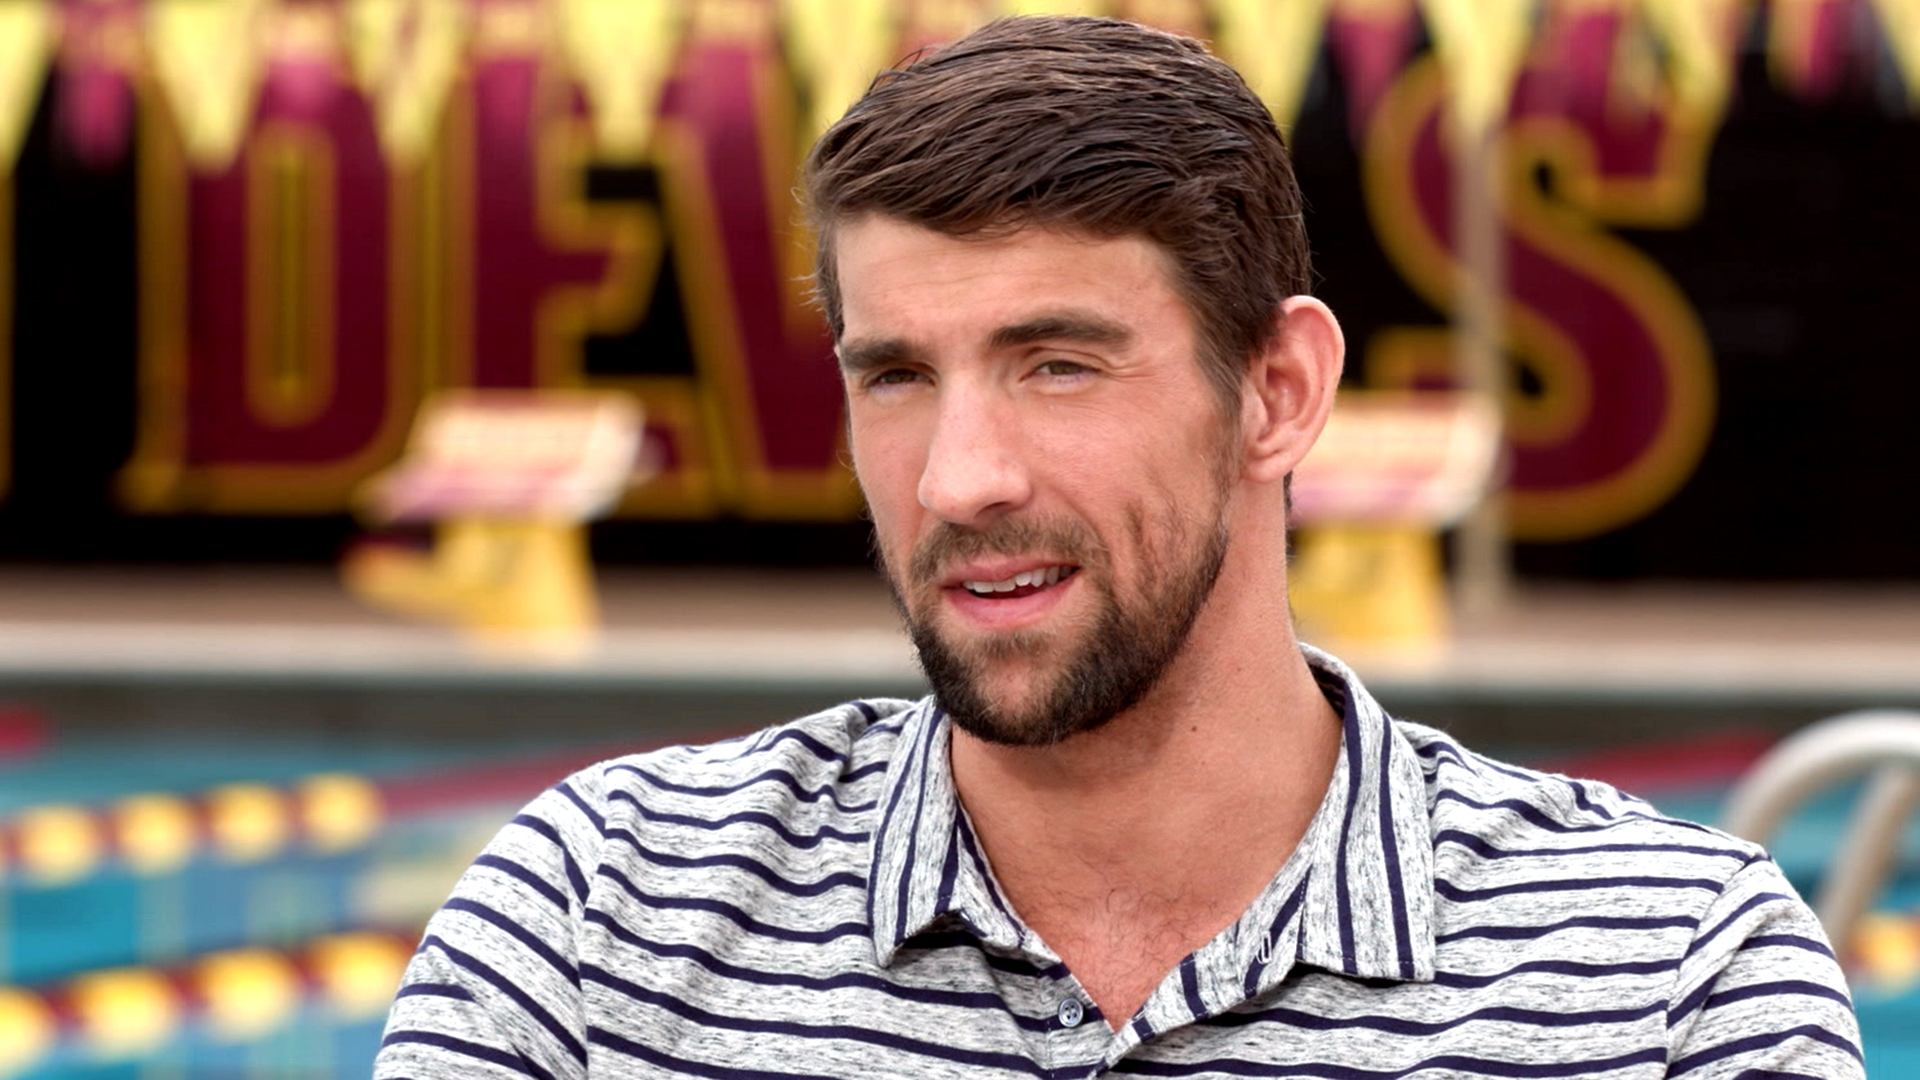 'I didn't like who I was': Michael Phelps opens up about his battle with depression